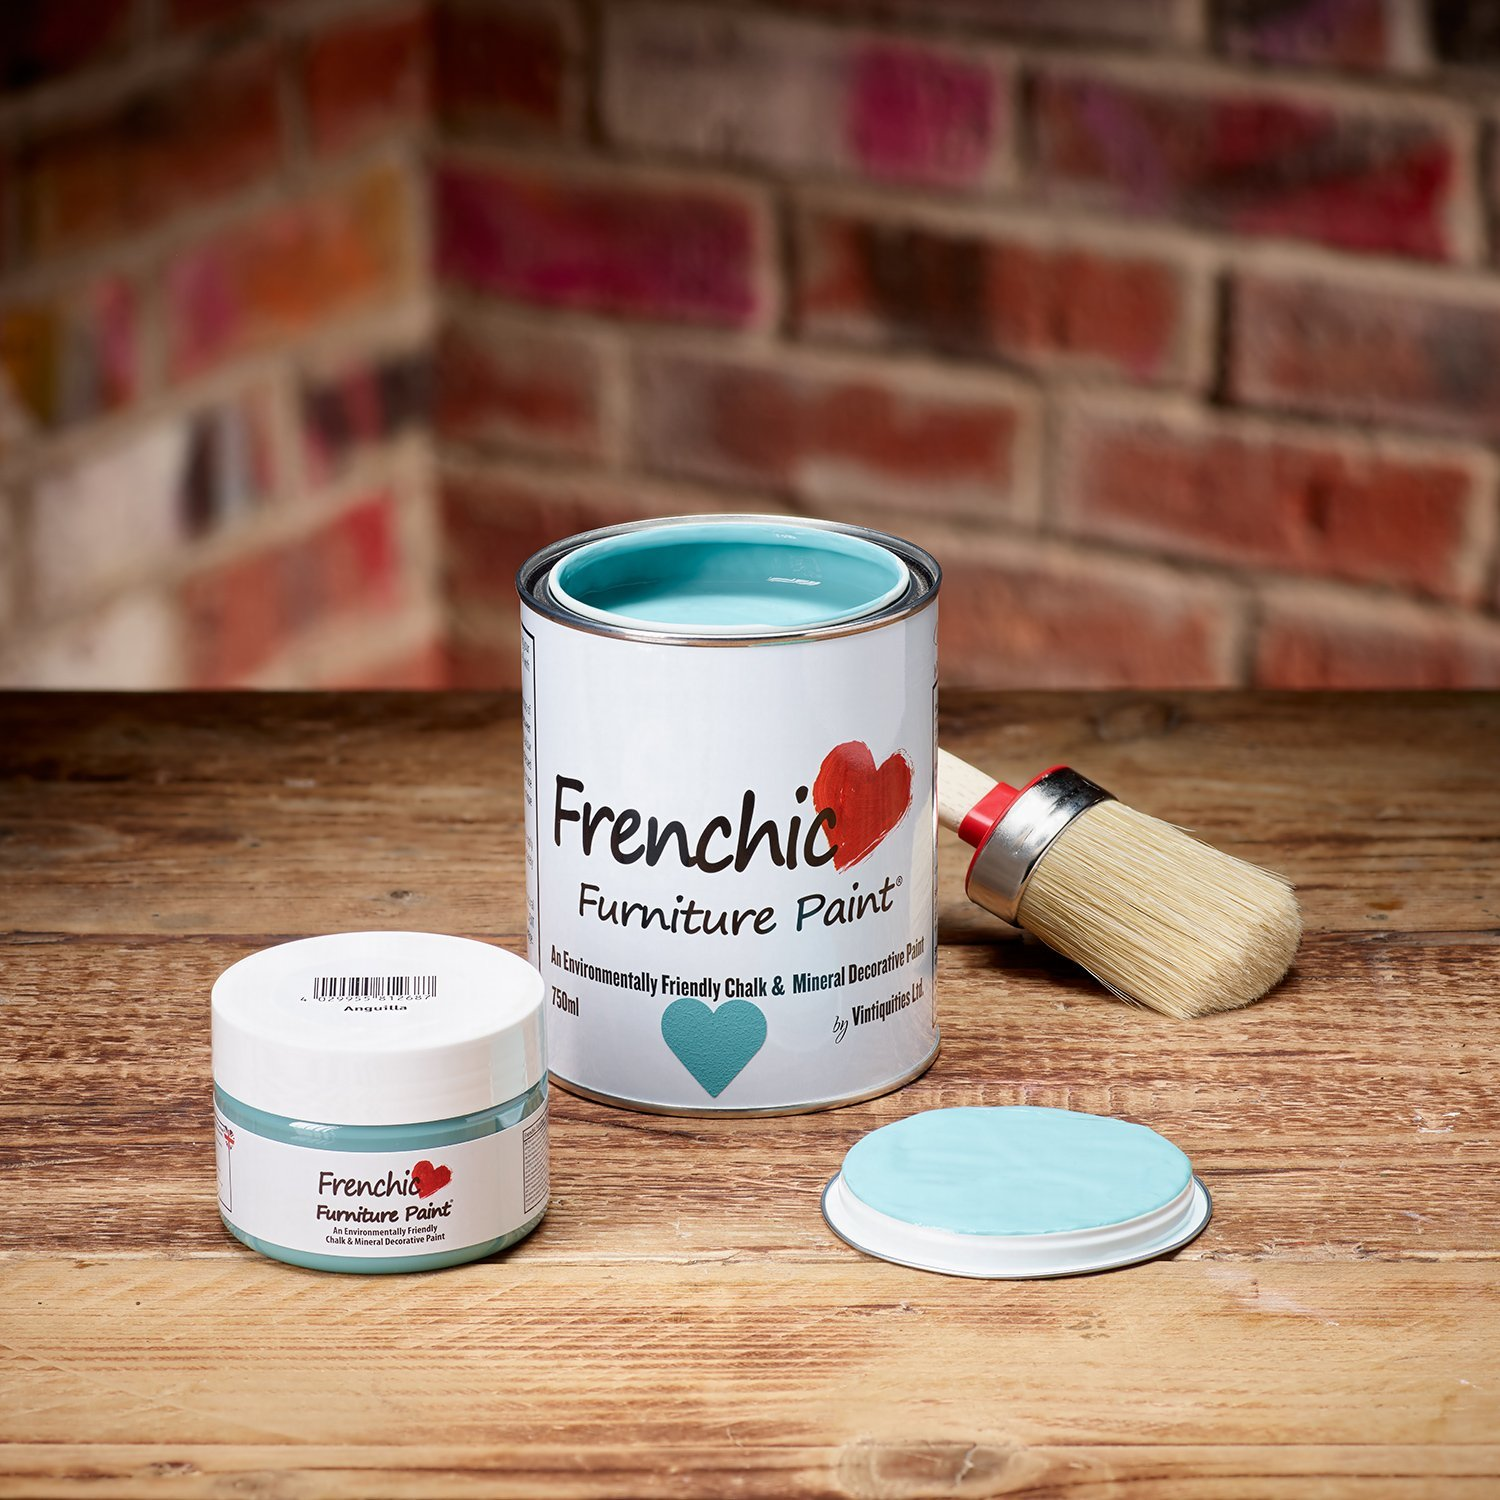 Frenchic Original Artisan